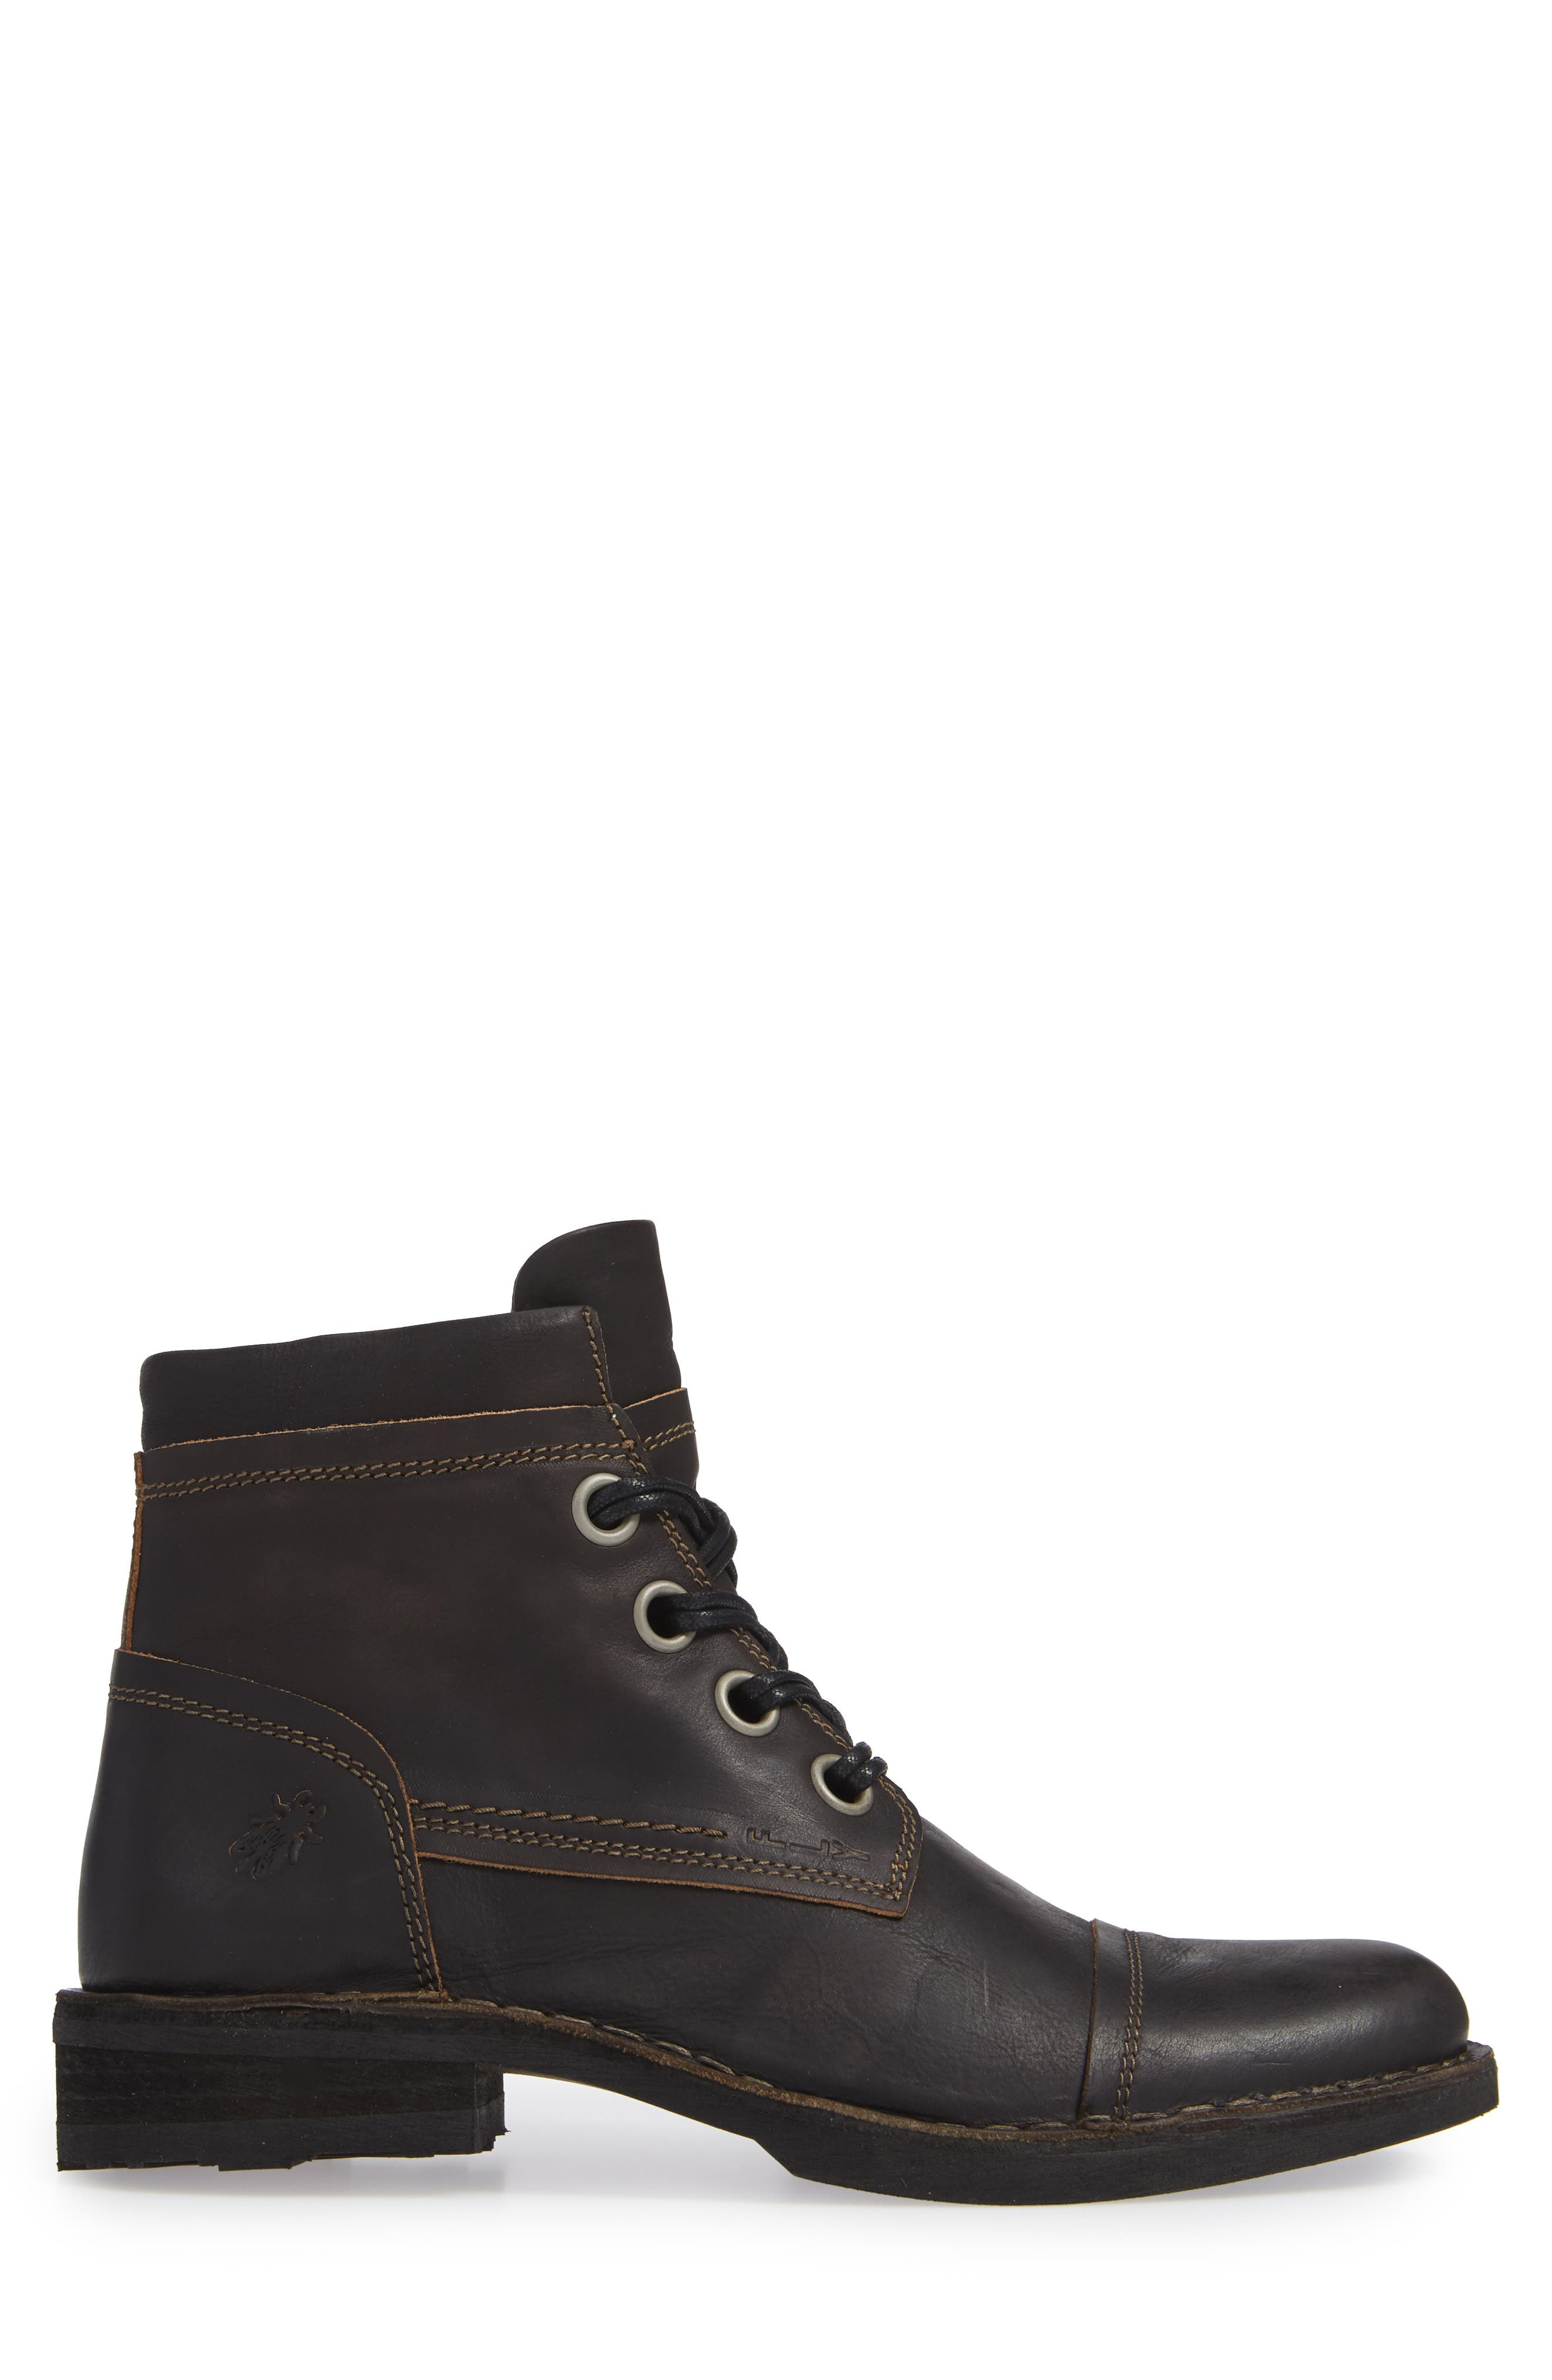 Rize Cap Toe Boot,                             Alternate thumbnail 3, color,                             BLACK SEBTA